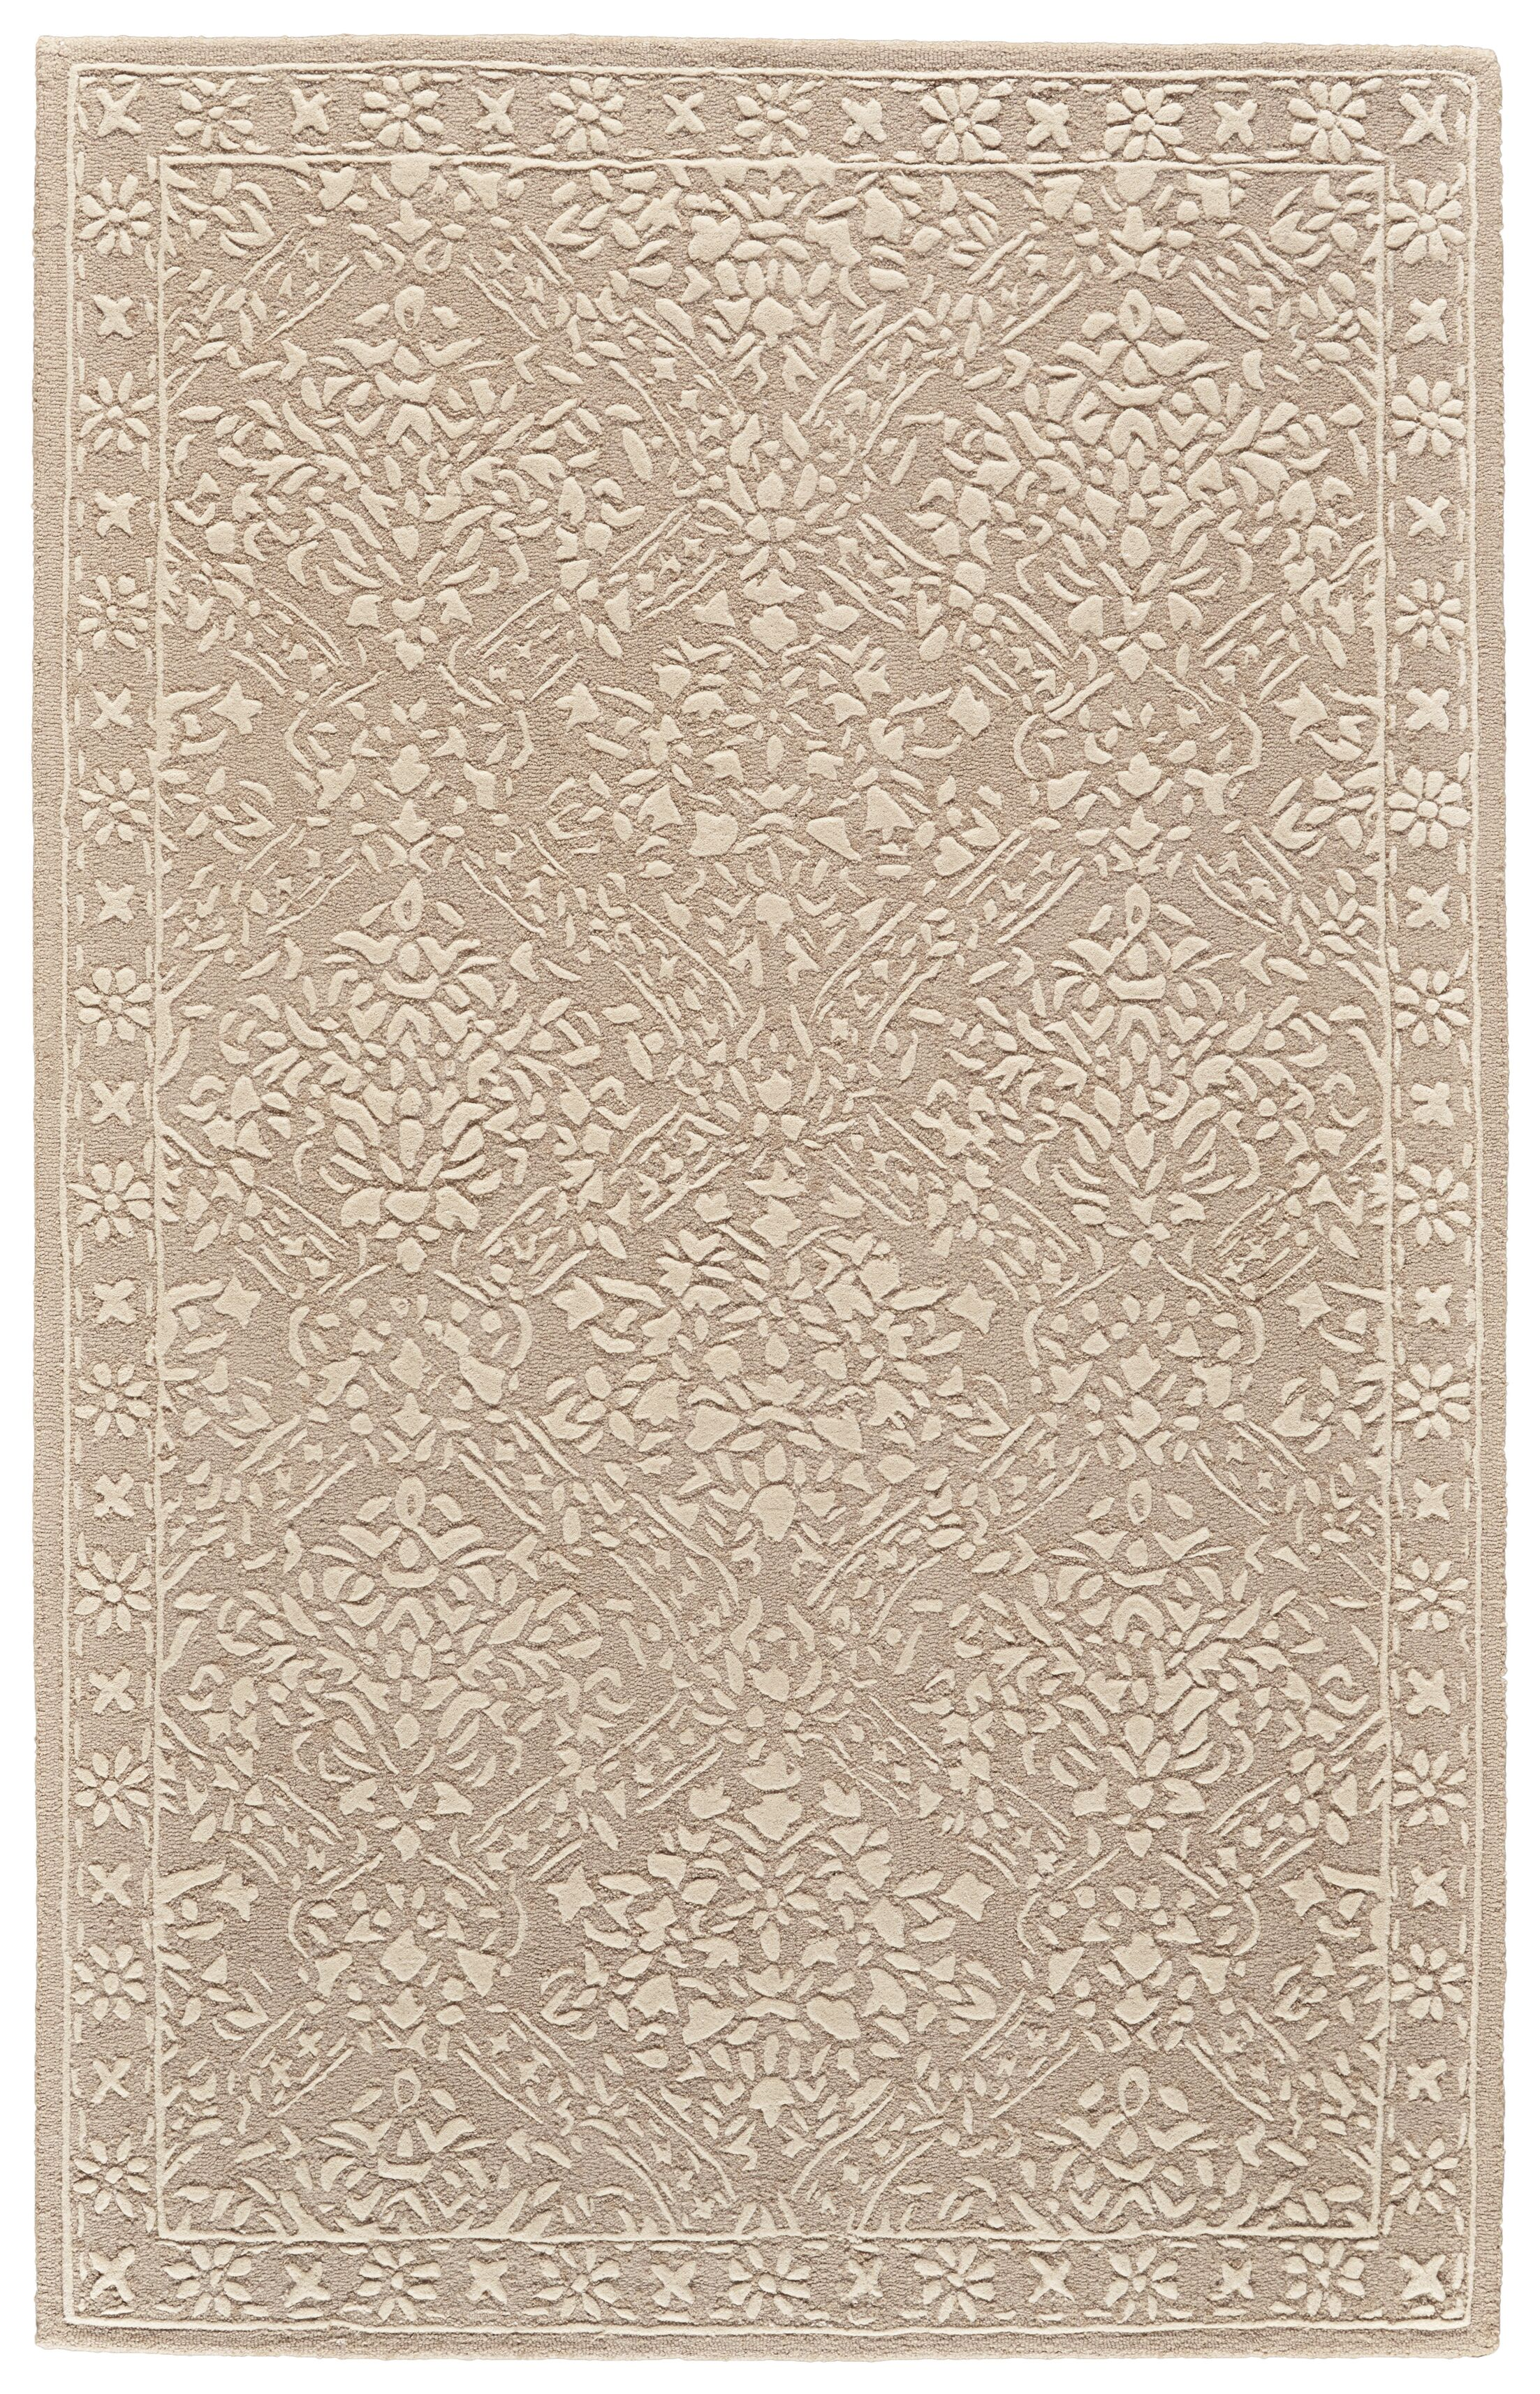 Griego Hand-Tufted Wool Beige/Ivory Area Rug Rug Size: Rectangle 3'6